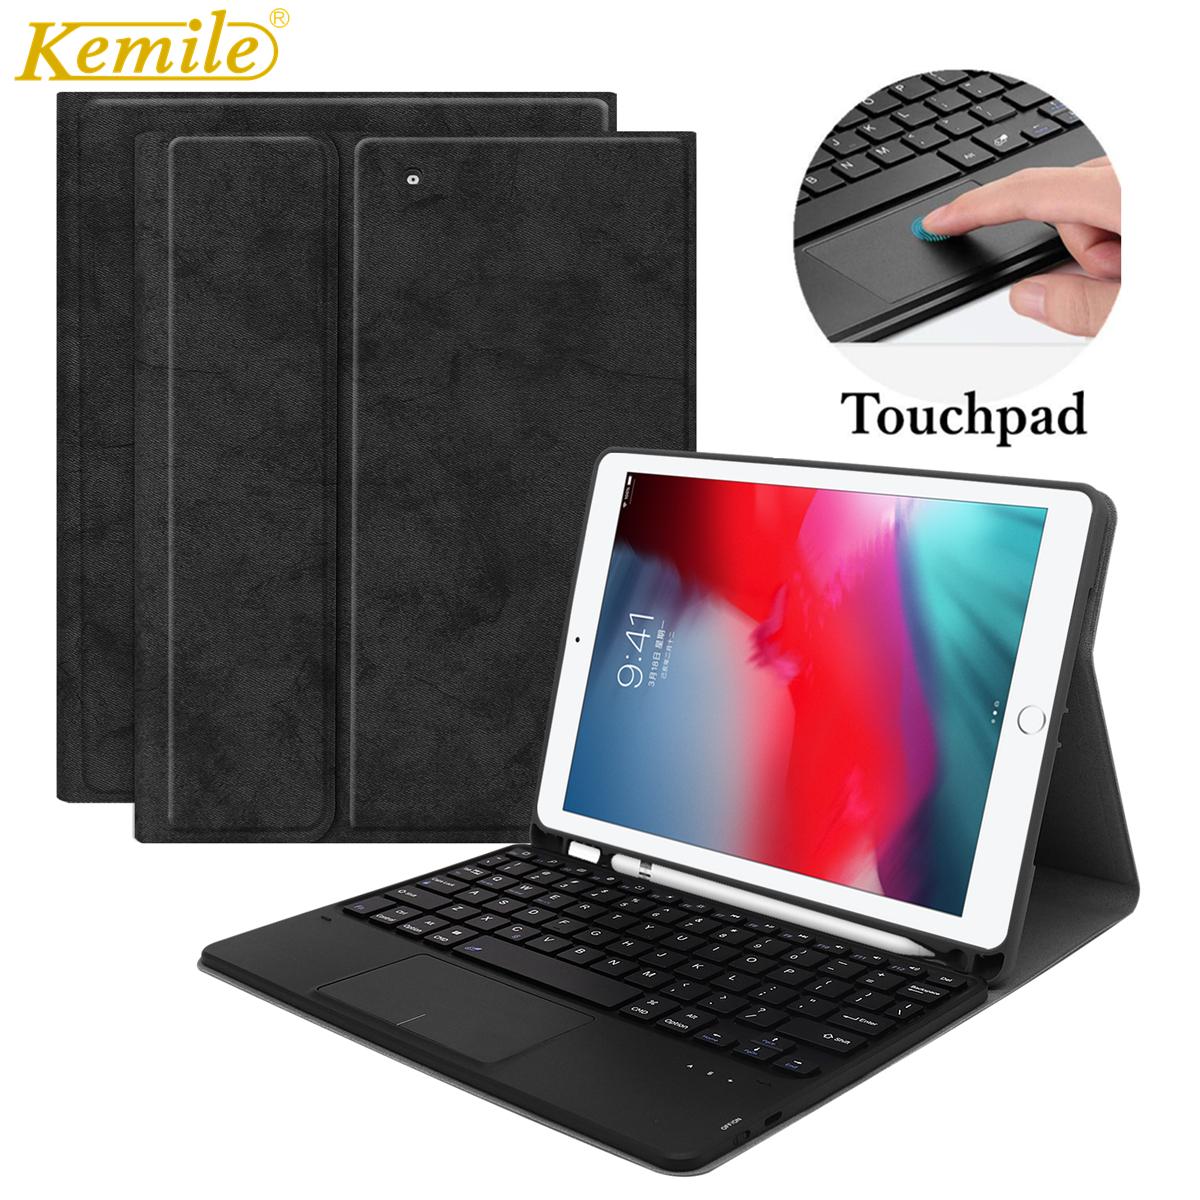 touchpad <font><b>Keyboard</b></font> Stand <font><b>Case</b></font> for <font><b>iPad</b></font> mini 4 7.9 For <font><b>iPad</b></font> mini 5 7.9 inch 2019 Cover With Pencil holder funda touchpad <font><b>Keyboard</b></font> image